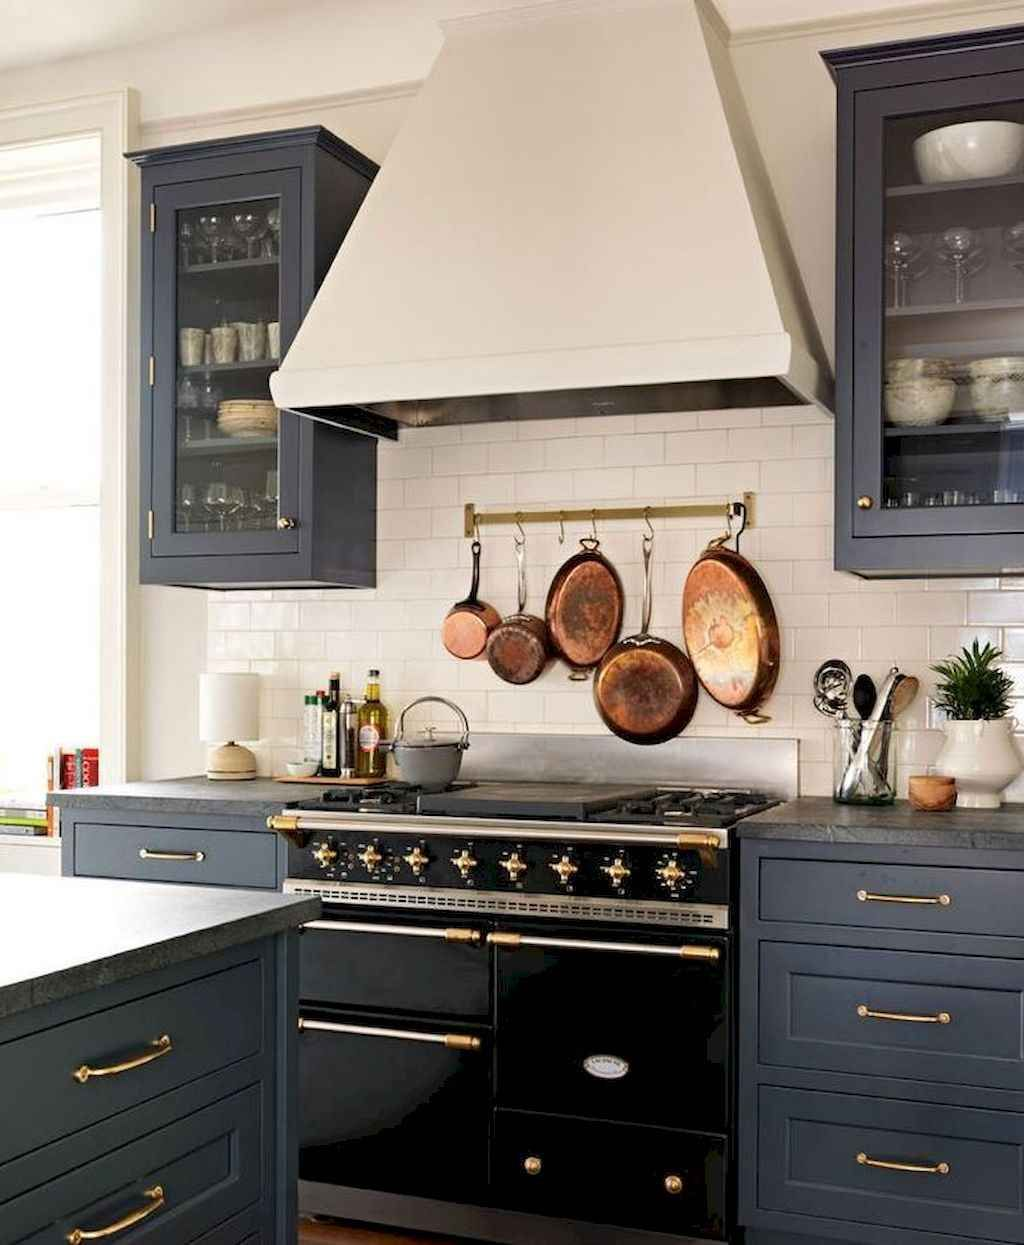 25 Absolutely Gorgeous Transitional Style Kitchen Ideas: 80 Beautiful Gray Kitchen Cabinet Design Ideas